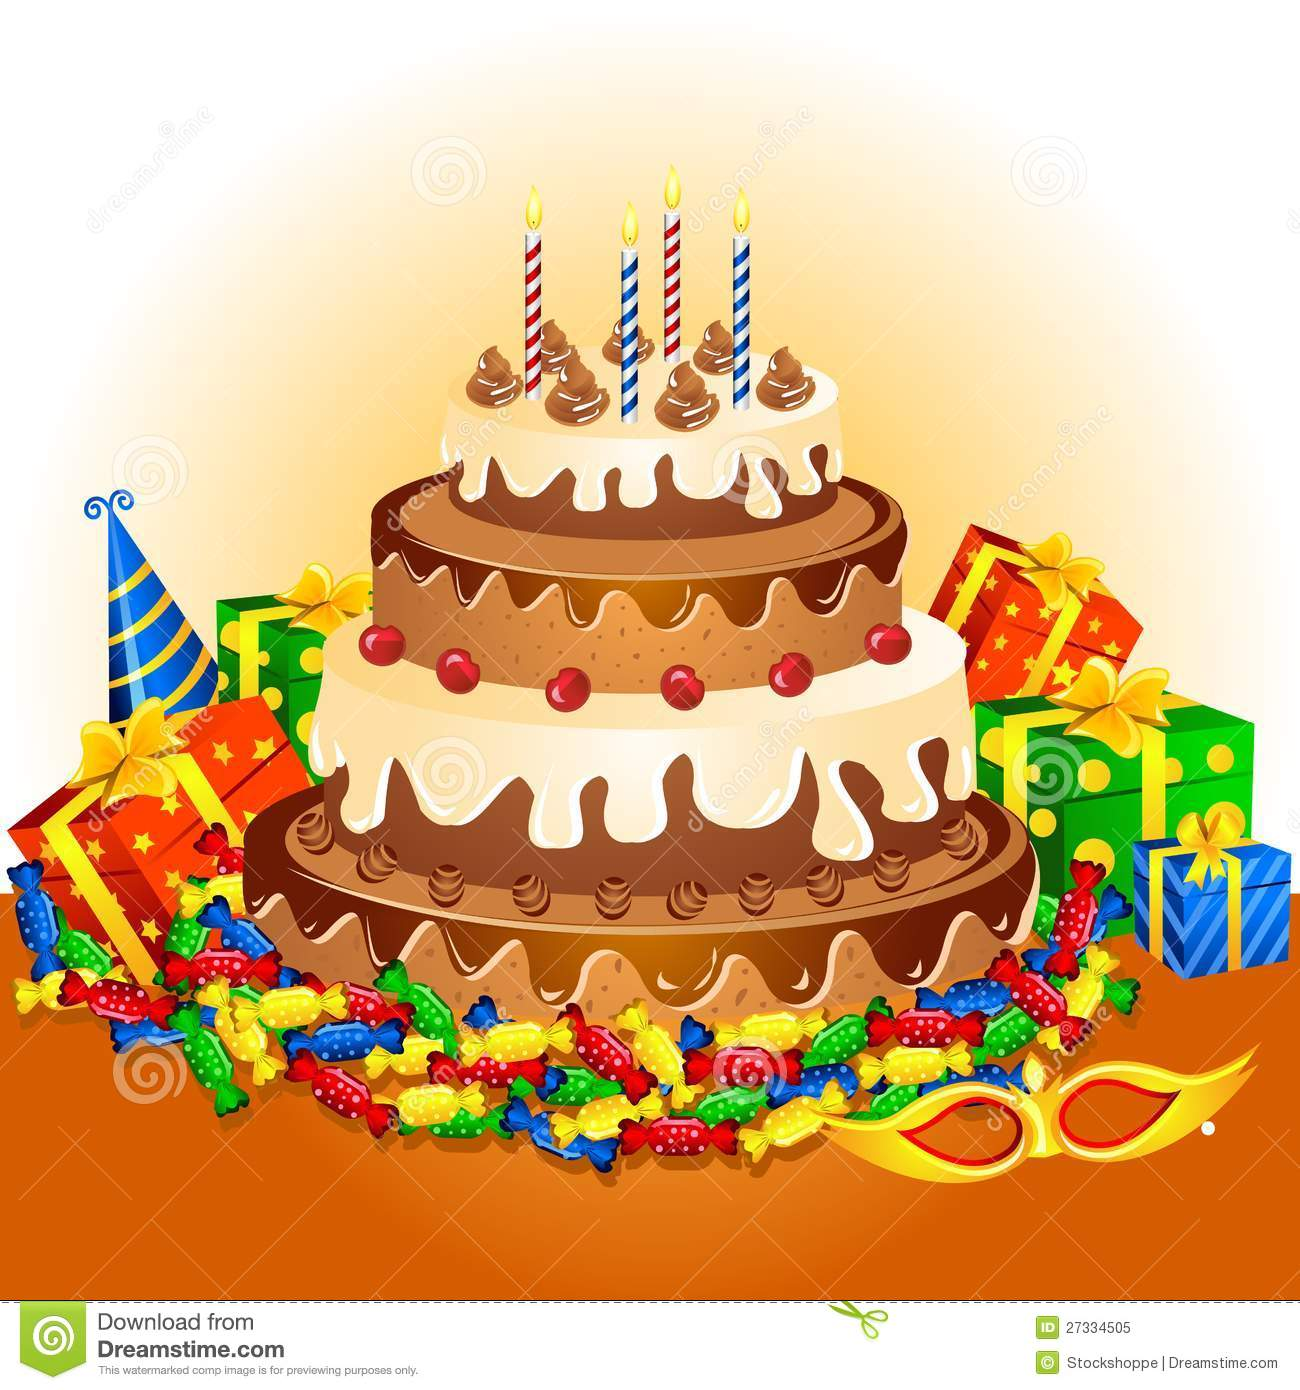 Birthday Cake Gift Images : Birthday Cake And Gifts Royalty Free Stock Photo - Image ...